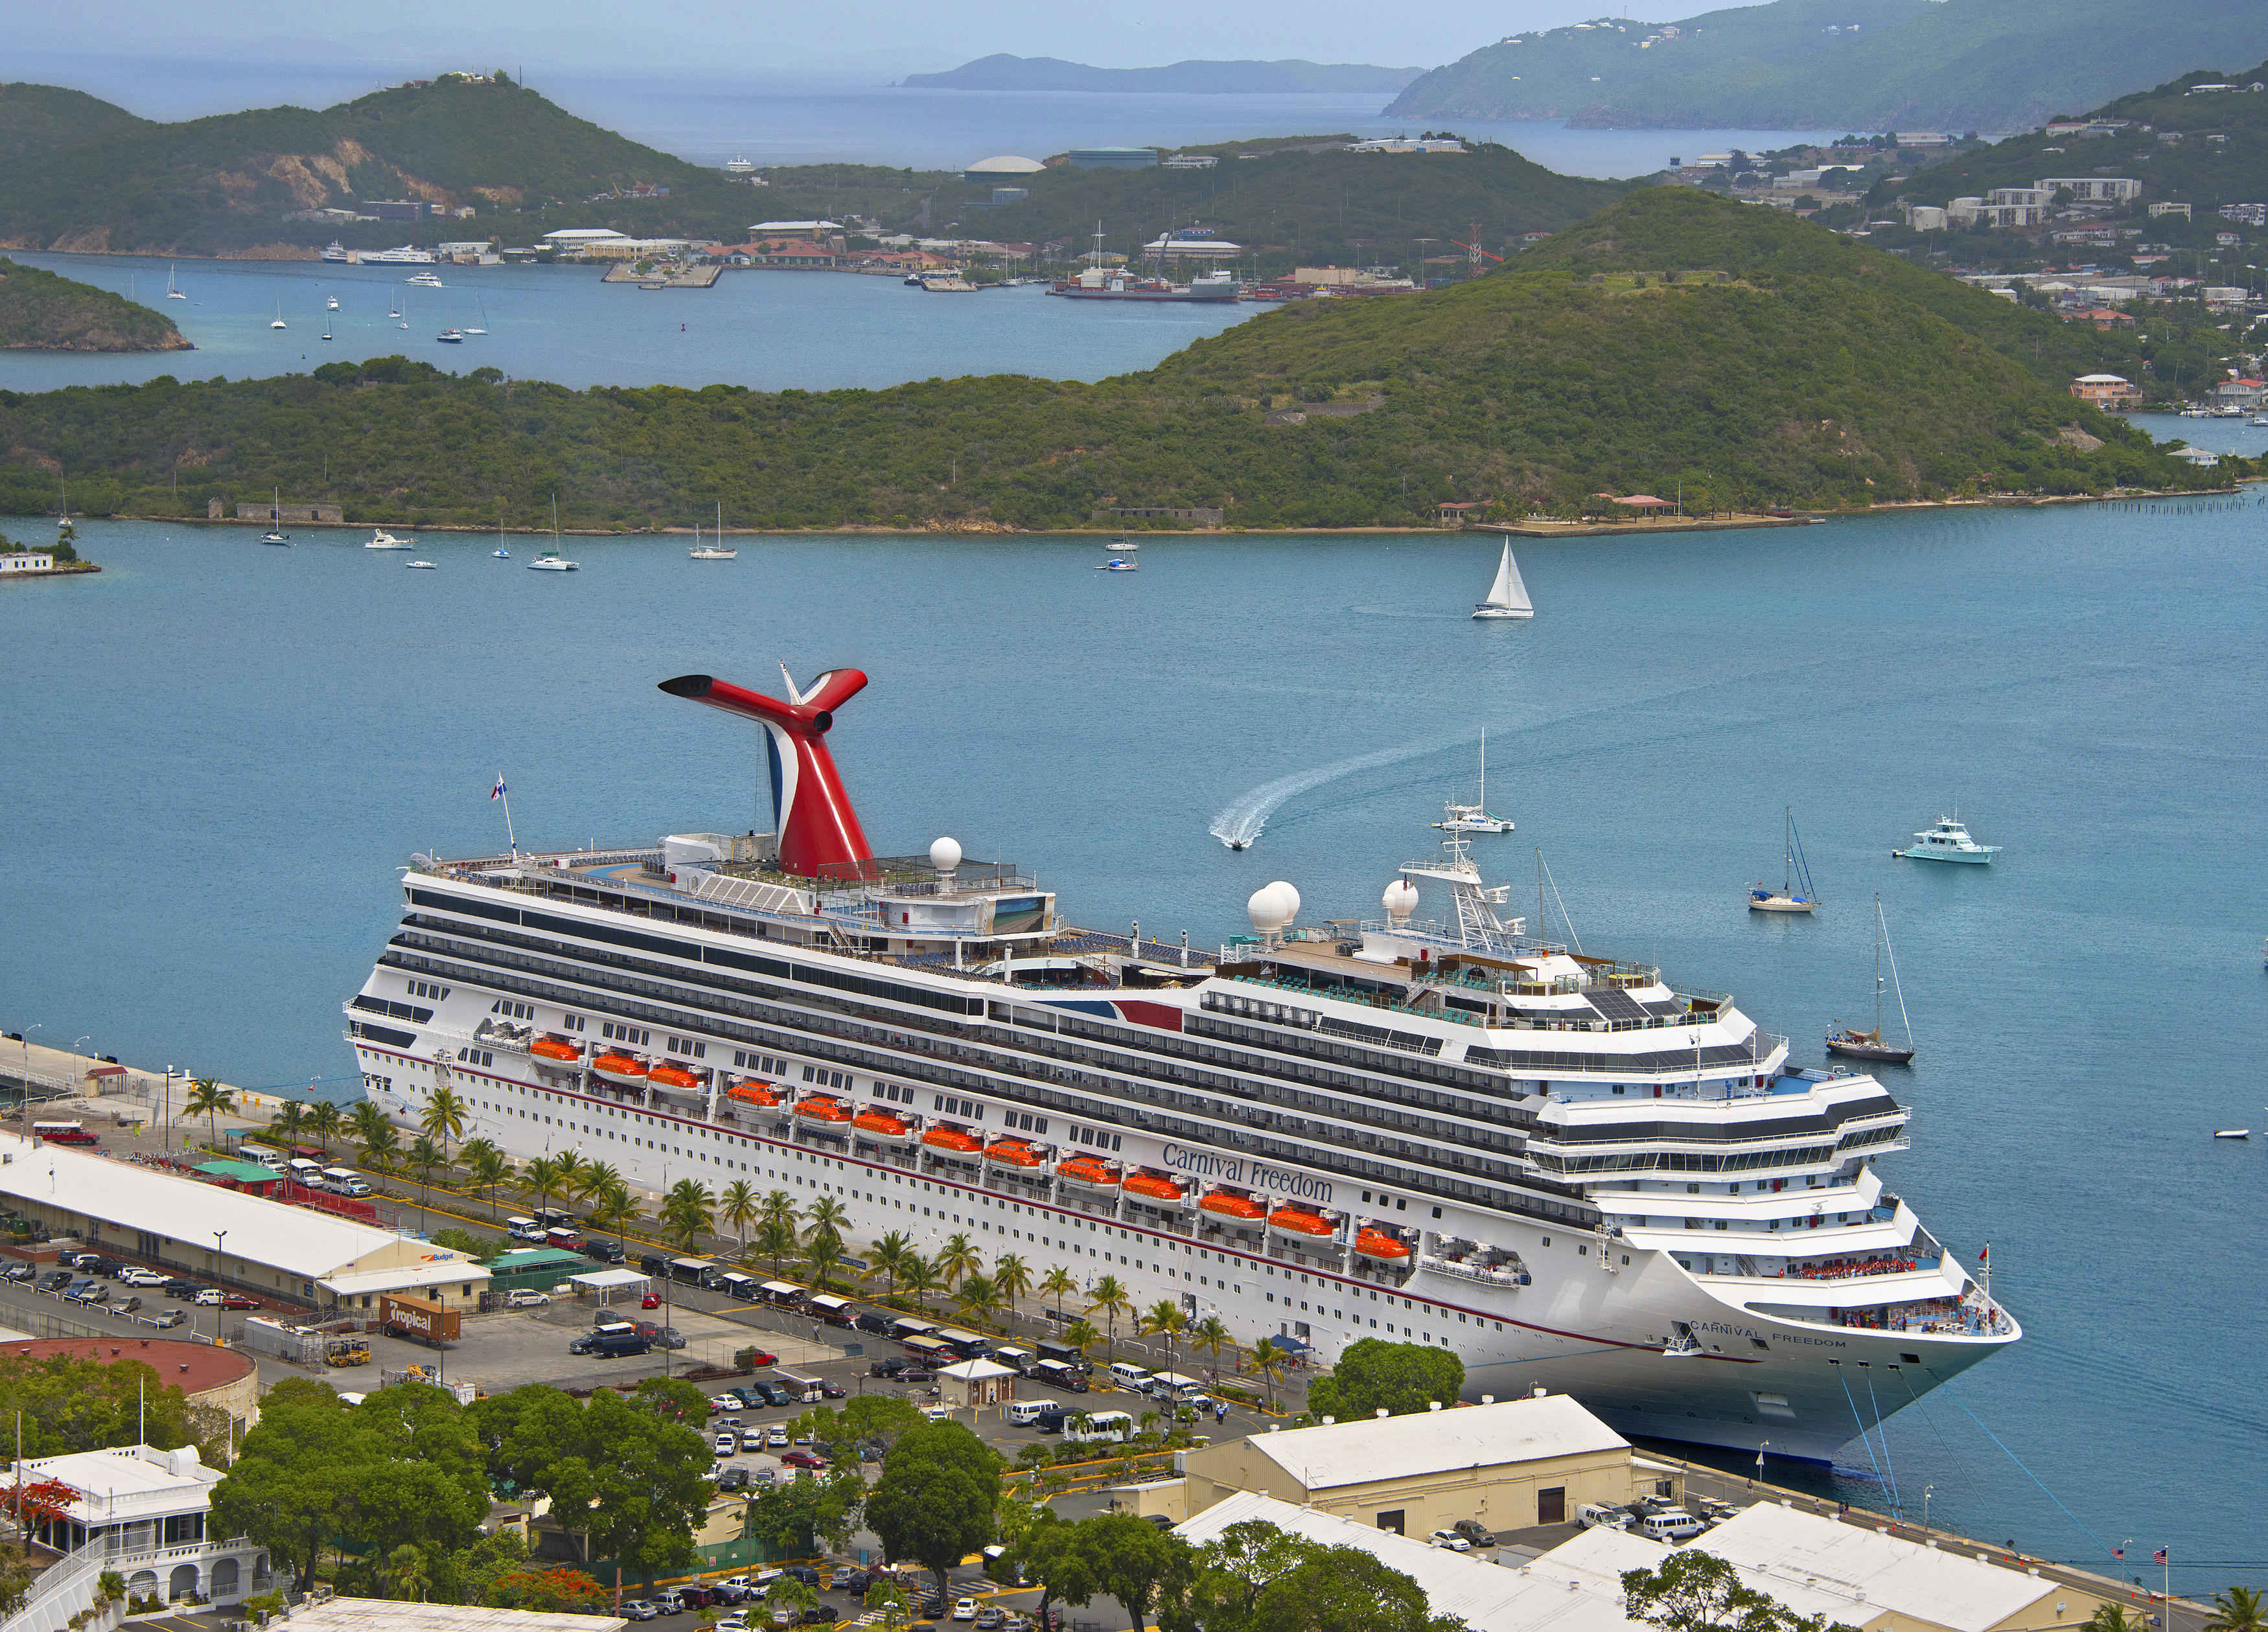 Carnival Freedom Gay Lesbian Cruise Reviews And Ratings Of - Lesbian cruise ships